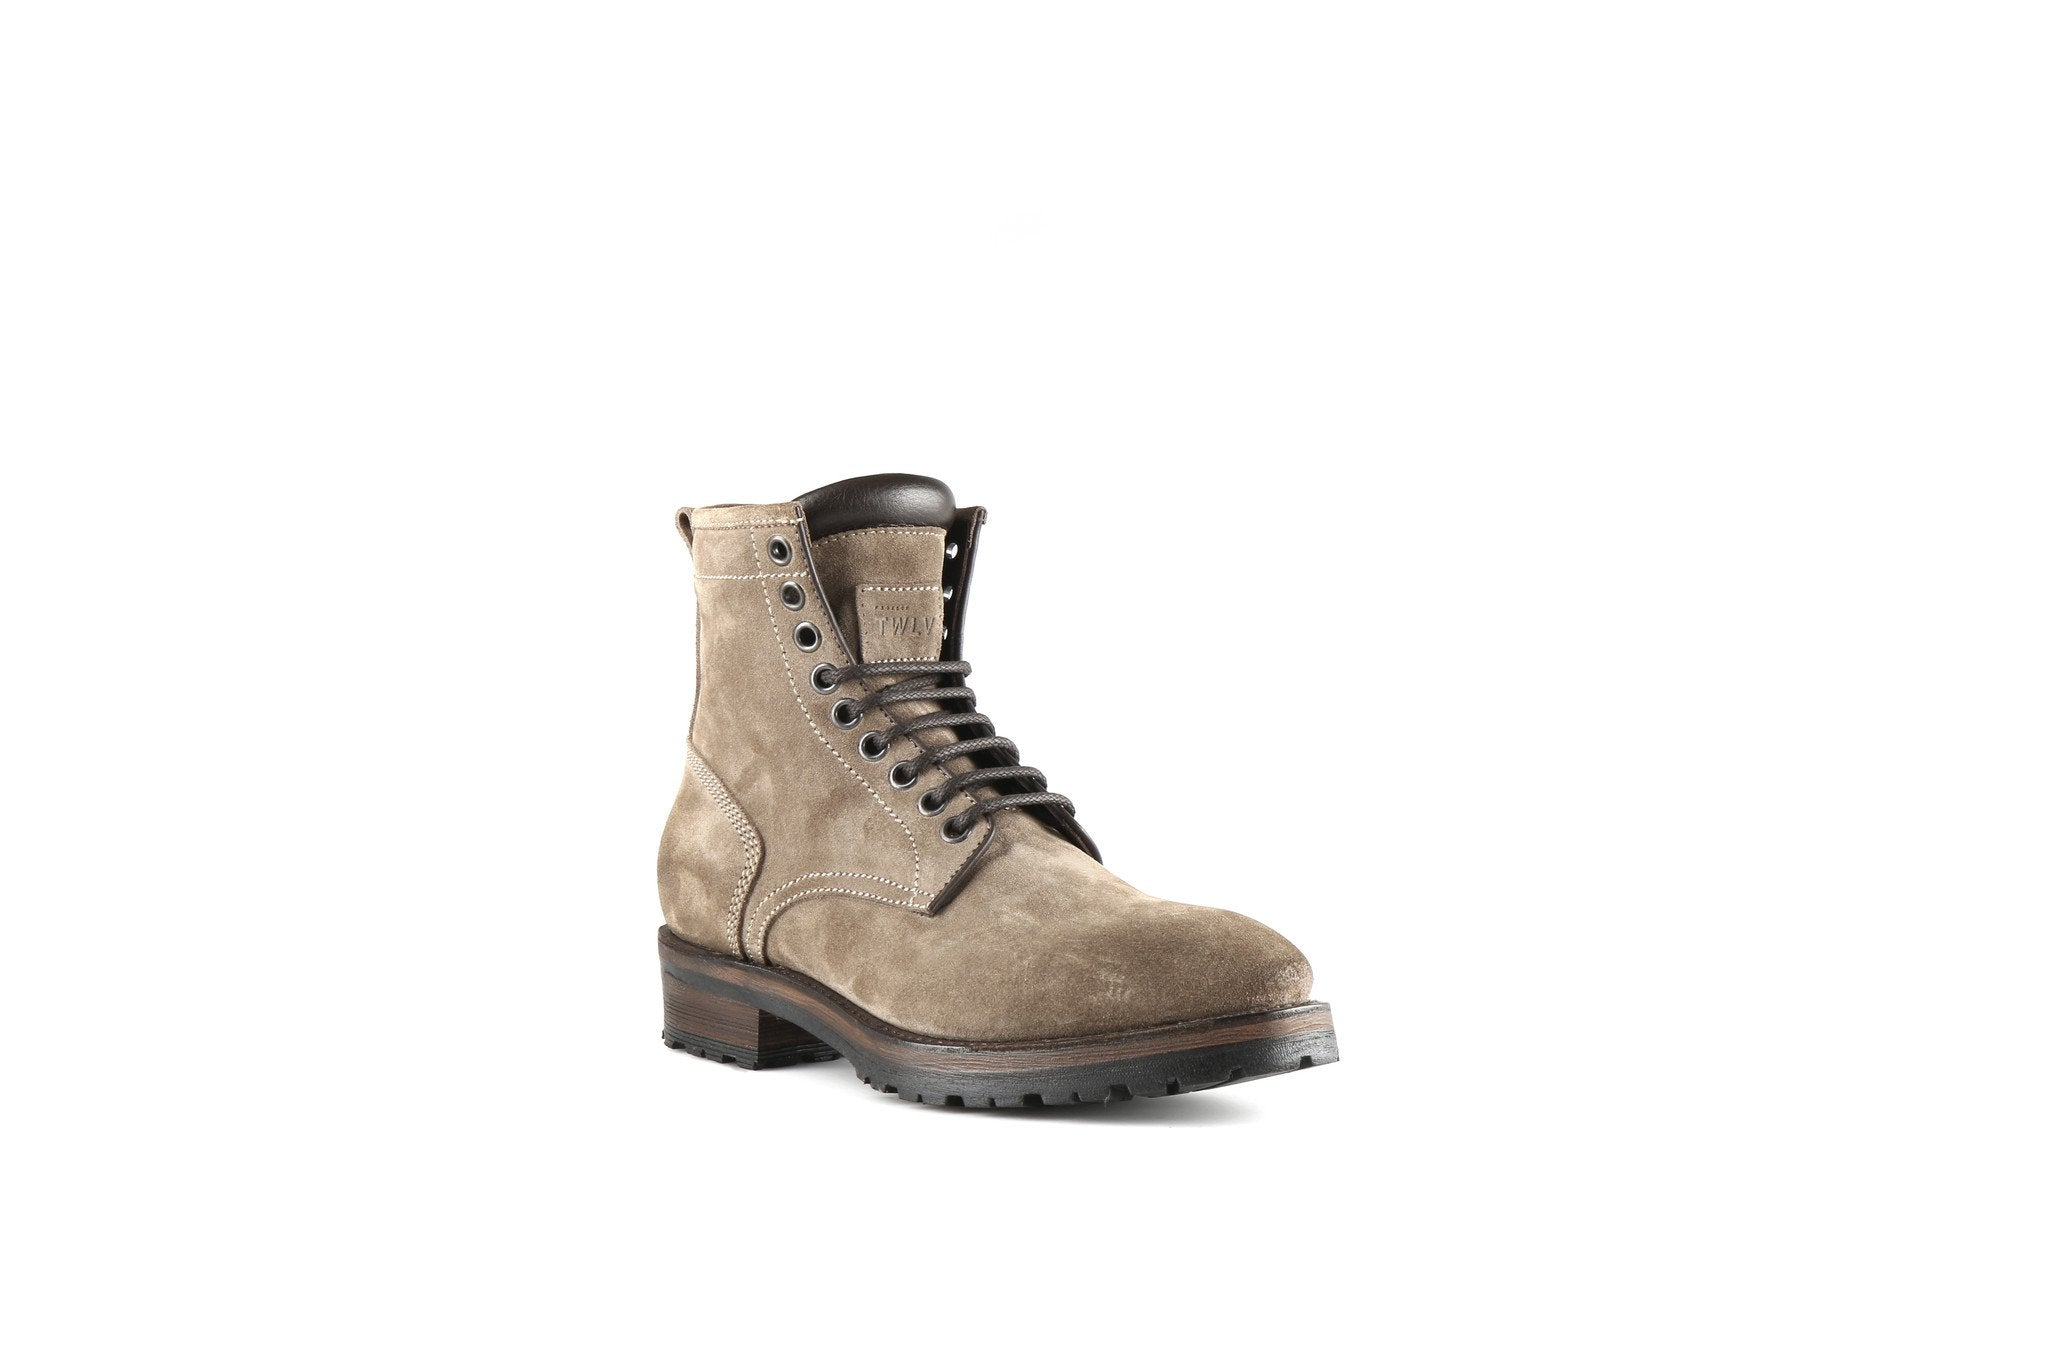 Royal Sand Suede Leather Logger Boots